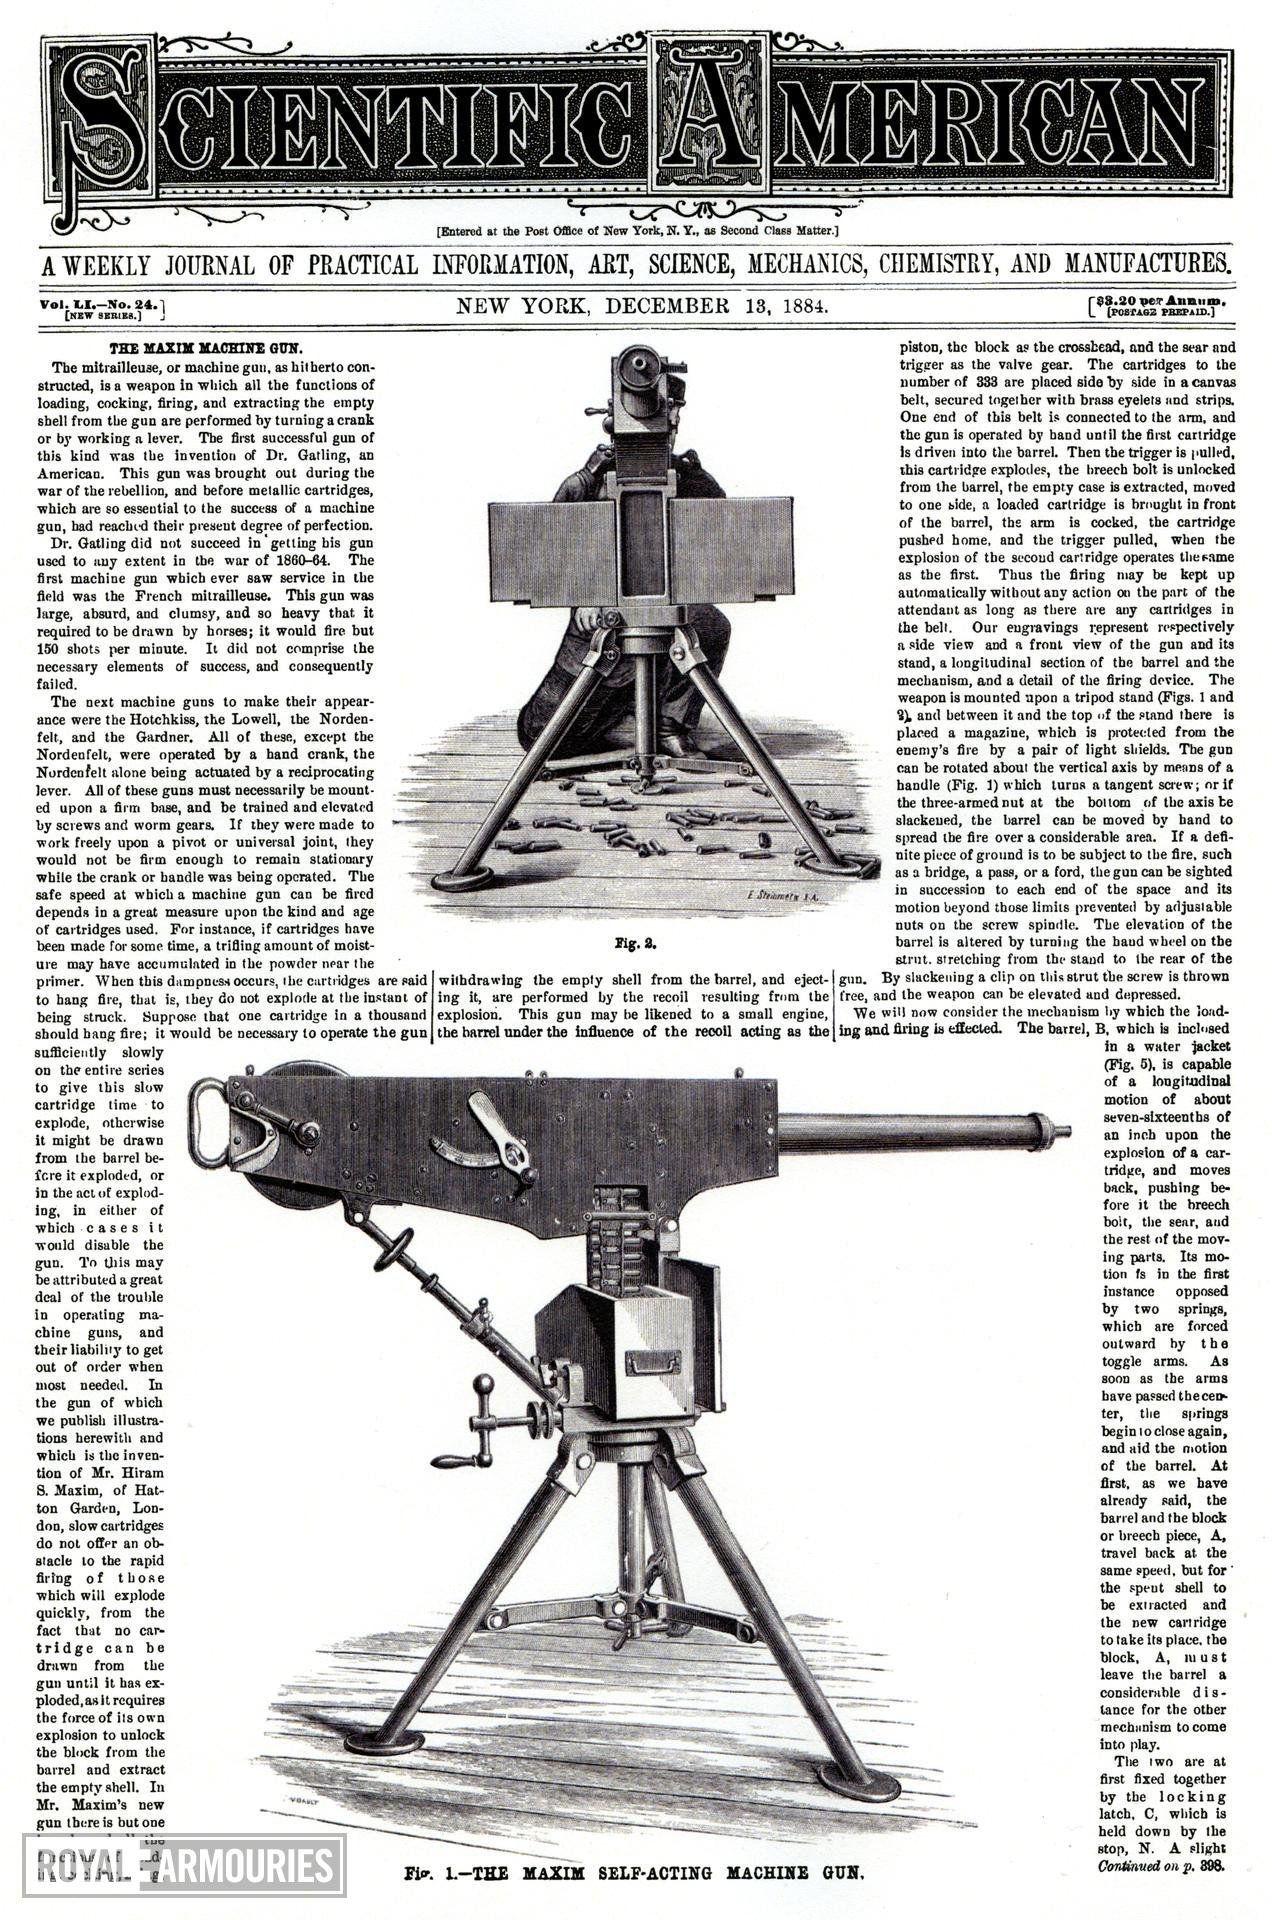 Journal article taken from the Scientific American covering the Maxim machine gun, New York, United States, December 13th, 1884